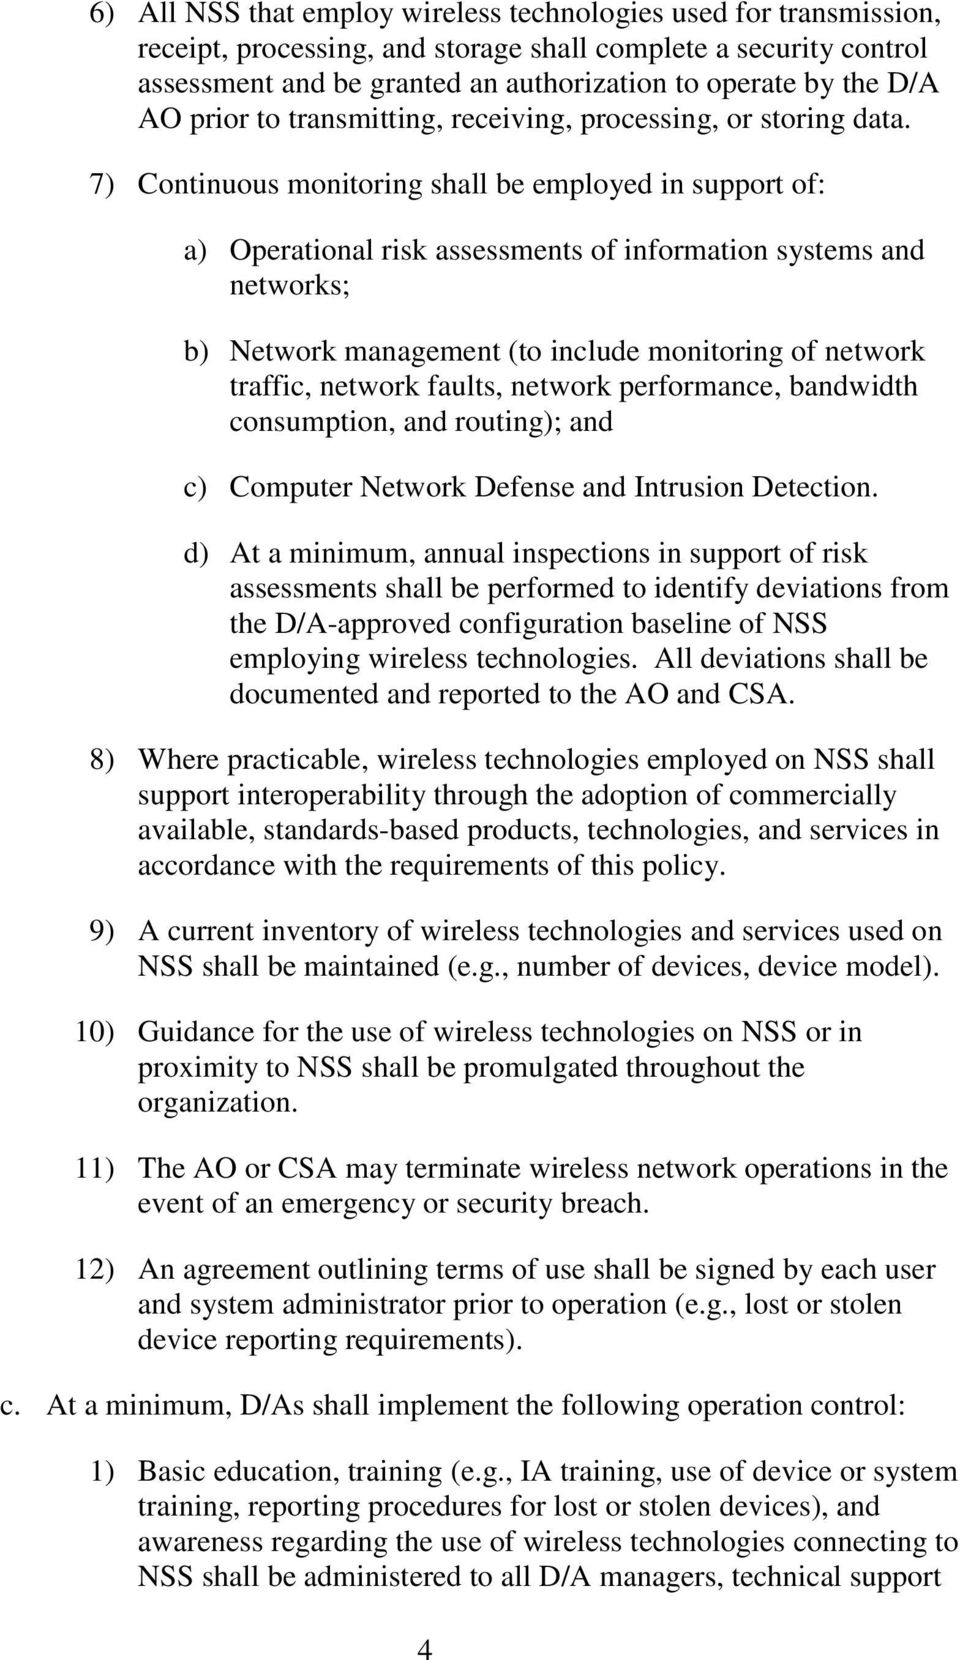 7) Continuous monitoring shall be employed in support of: a) Operational risk assessments of information systems and networks; b) Network management (to include monitoring of network traffic, network